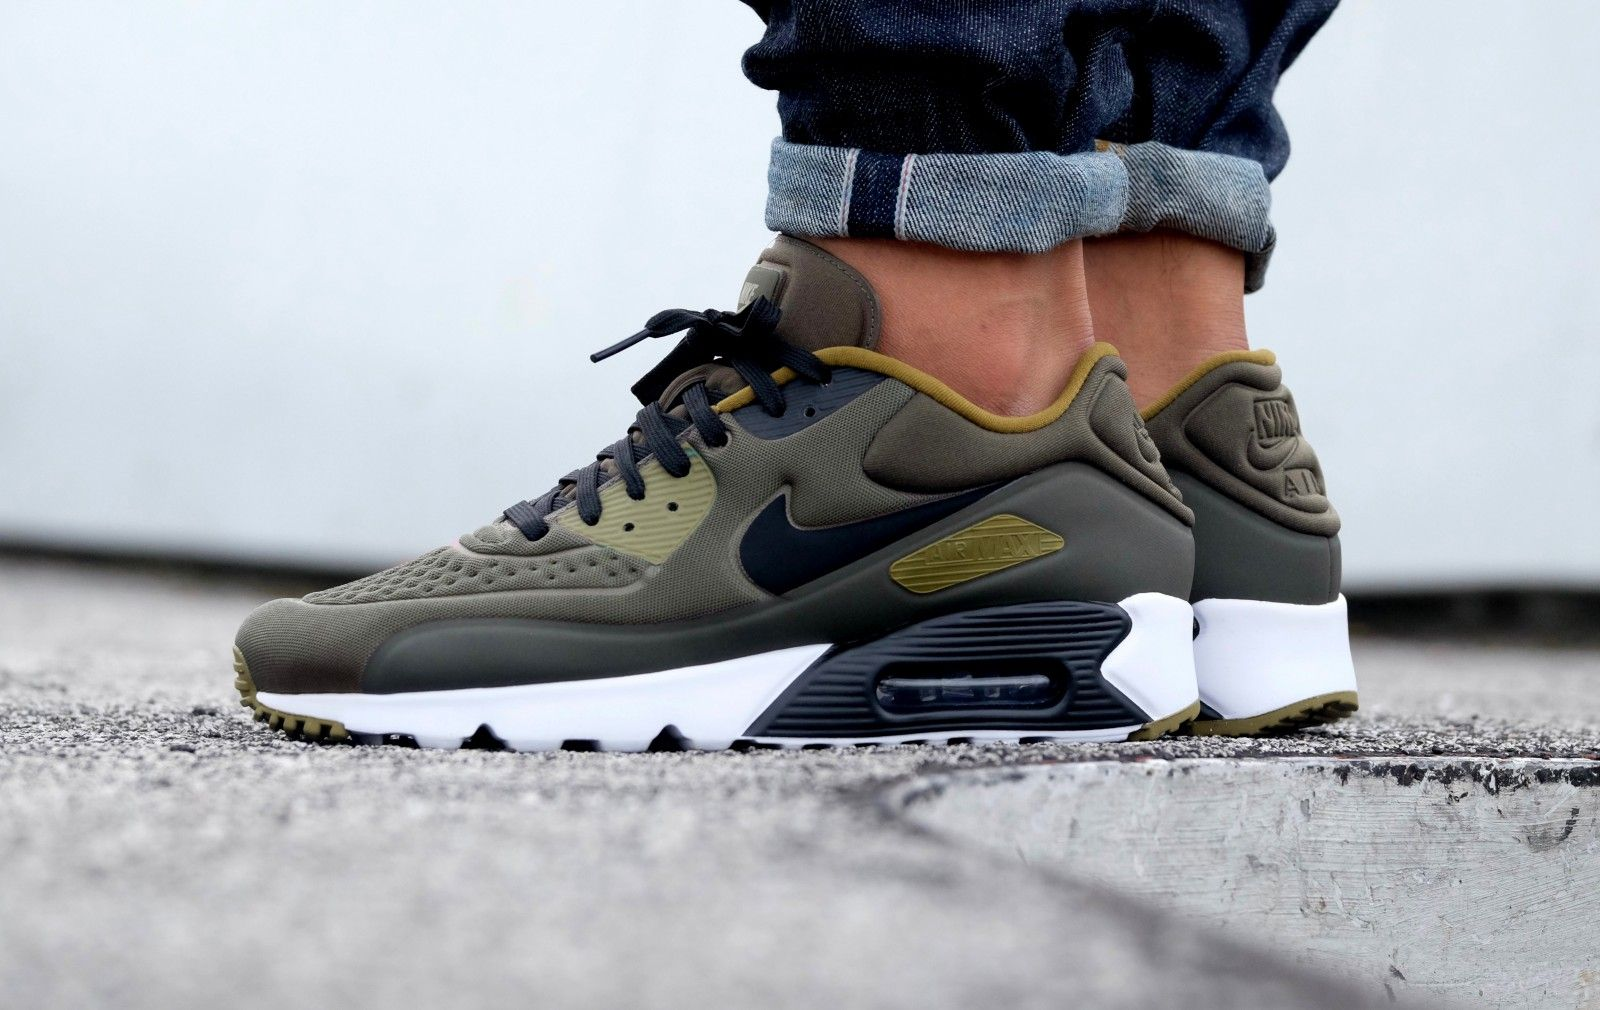 best website f2be7 4805d Nike Air Max 90 Ultra Special Edition Cargo Khaki  Black-Olive Flak-White -  845039-300